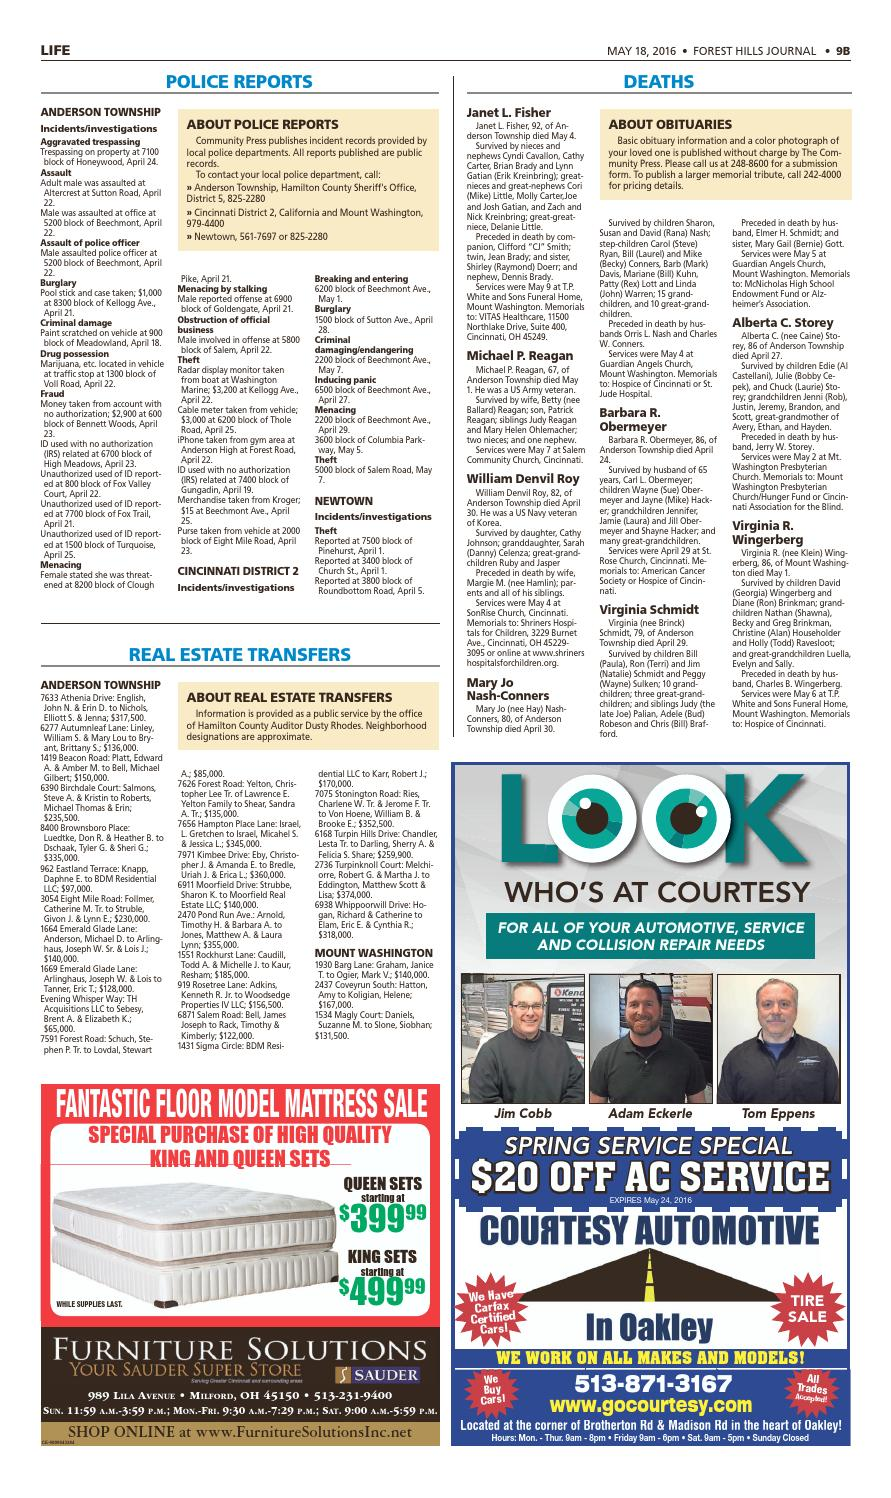 Forest hills journal 051816 by Enquirer Media - issuu